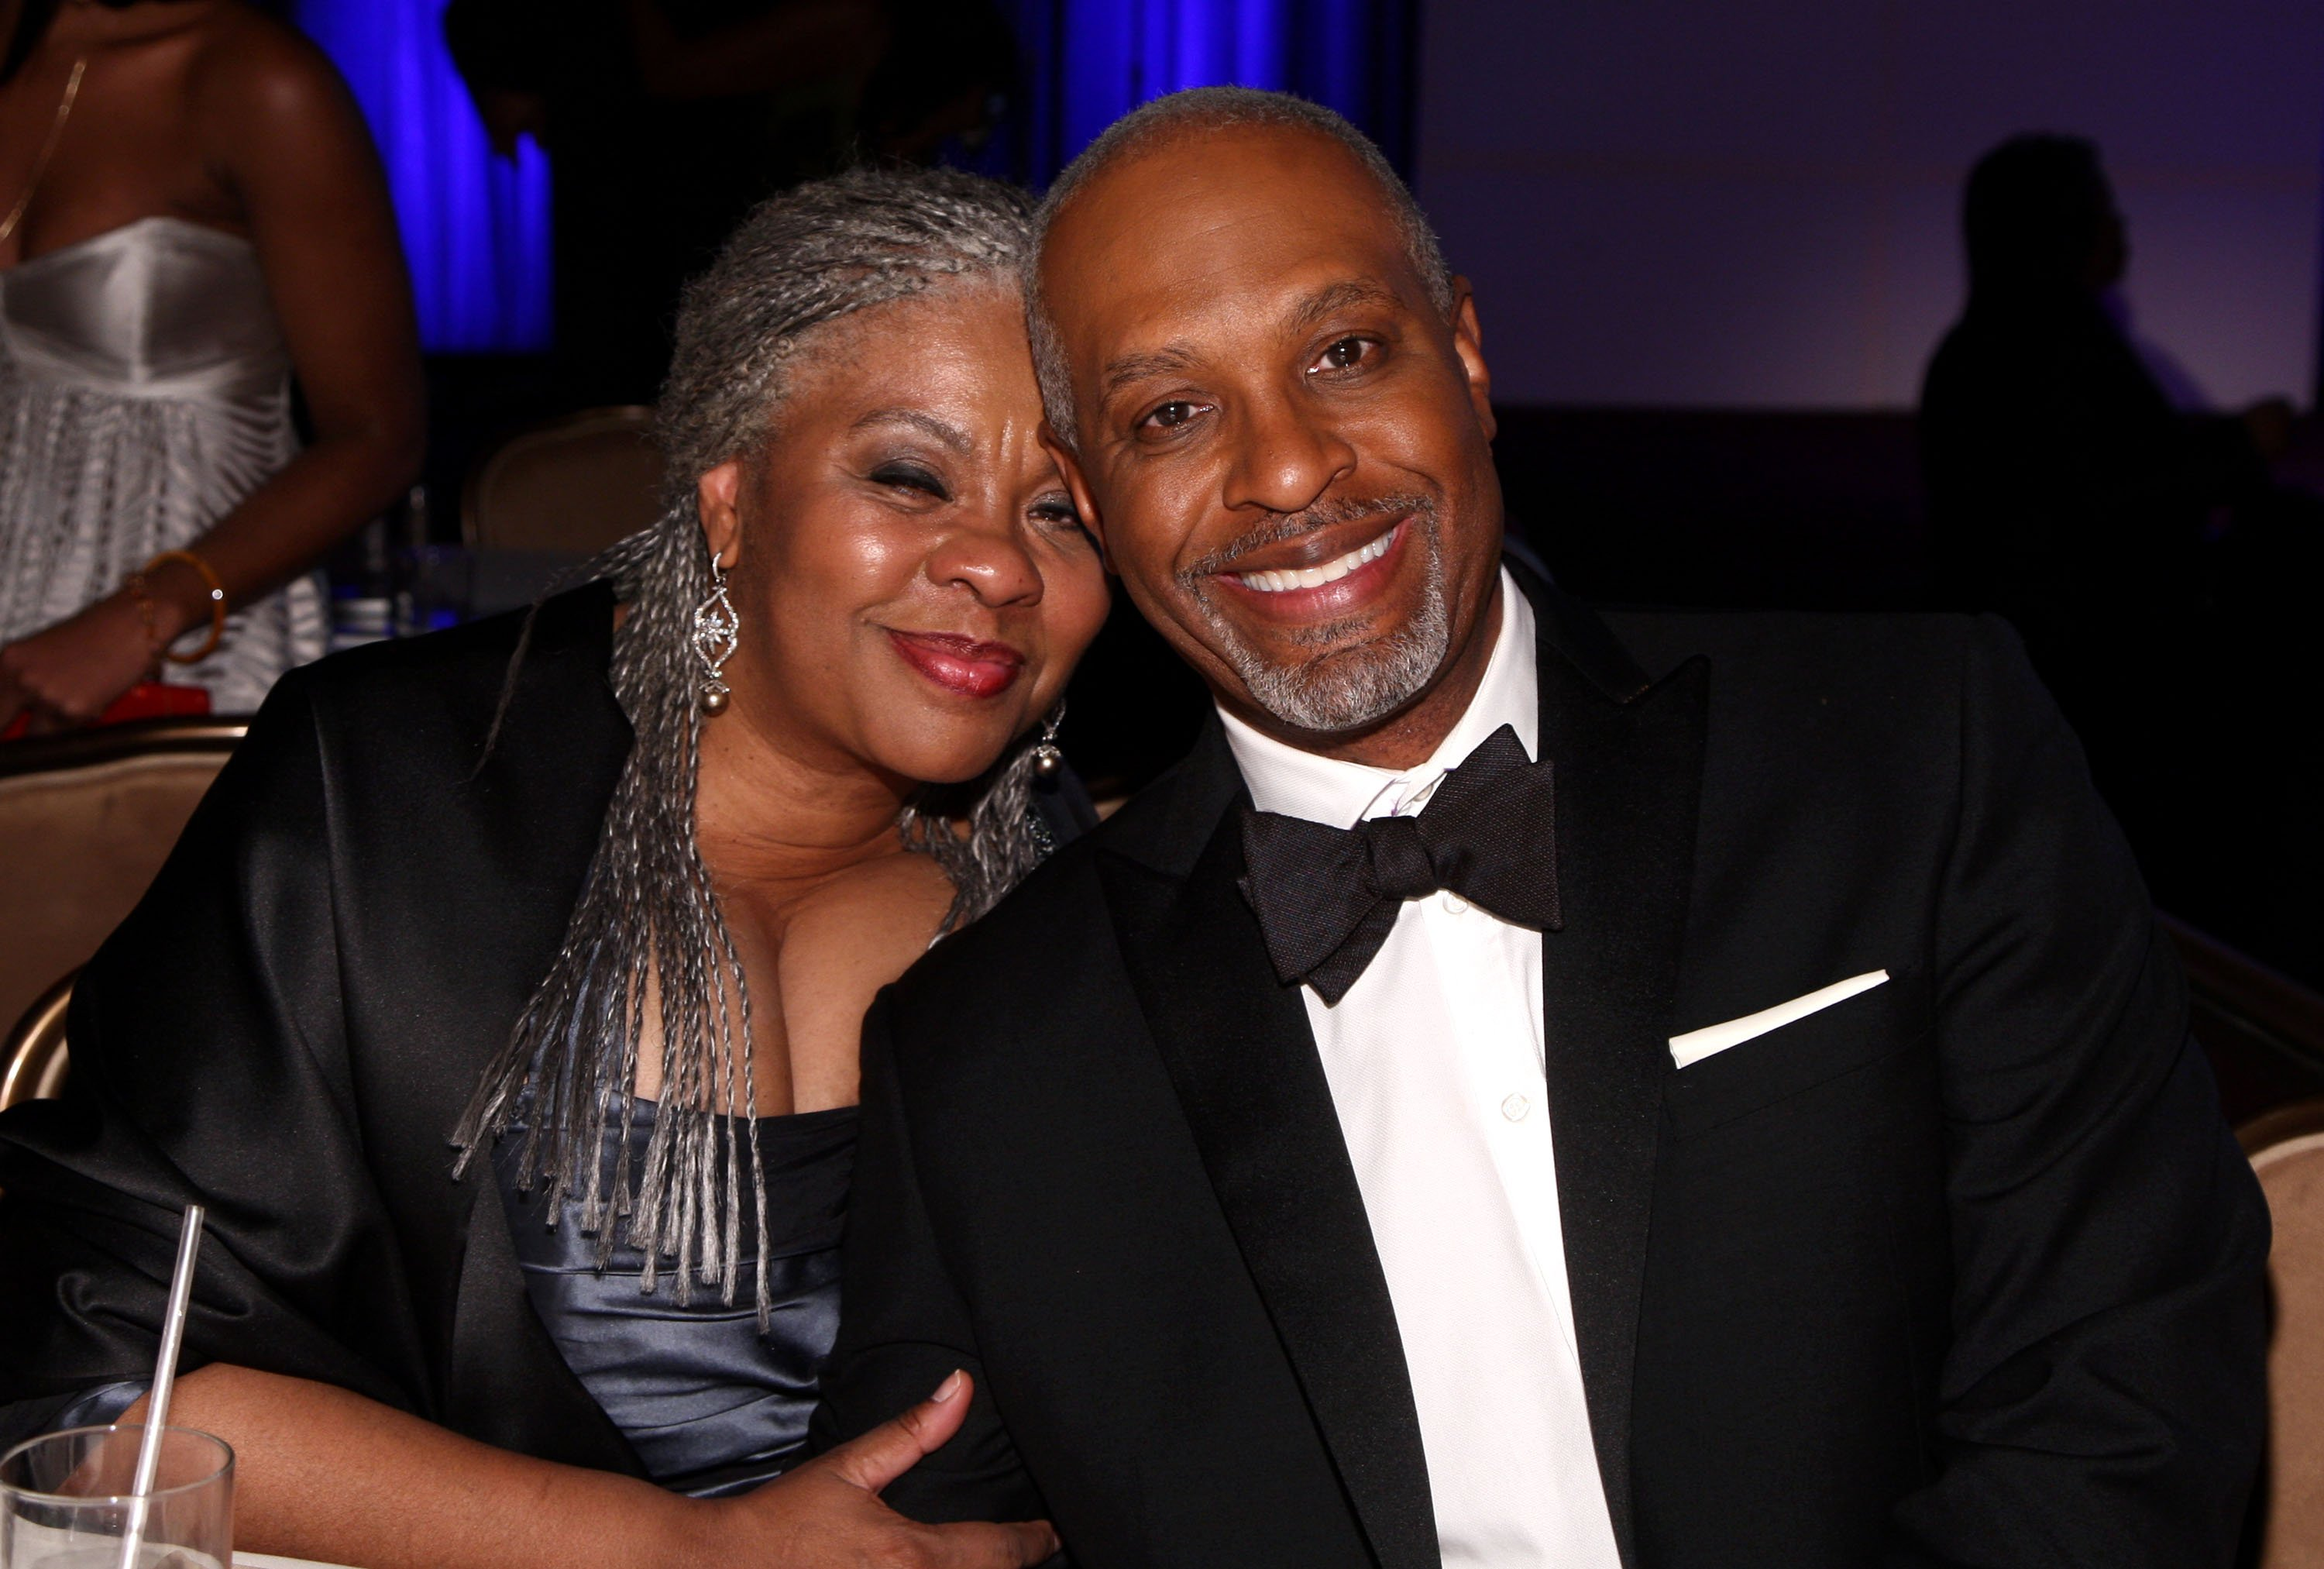 James Pickens Jr. (R) and wife Gina Pickens attends the after party for 40th NAACP Image Awards held at the Beverly Hilton Hotel on February 12, 2009, in Los Angeles, California. | Source: Getty Images.